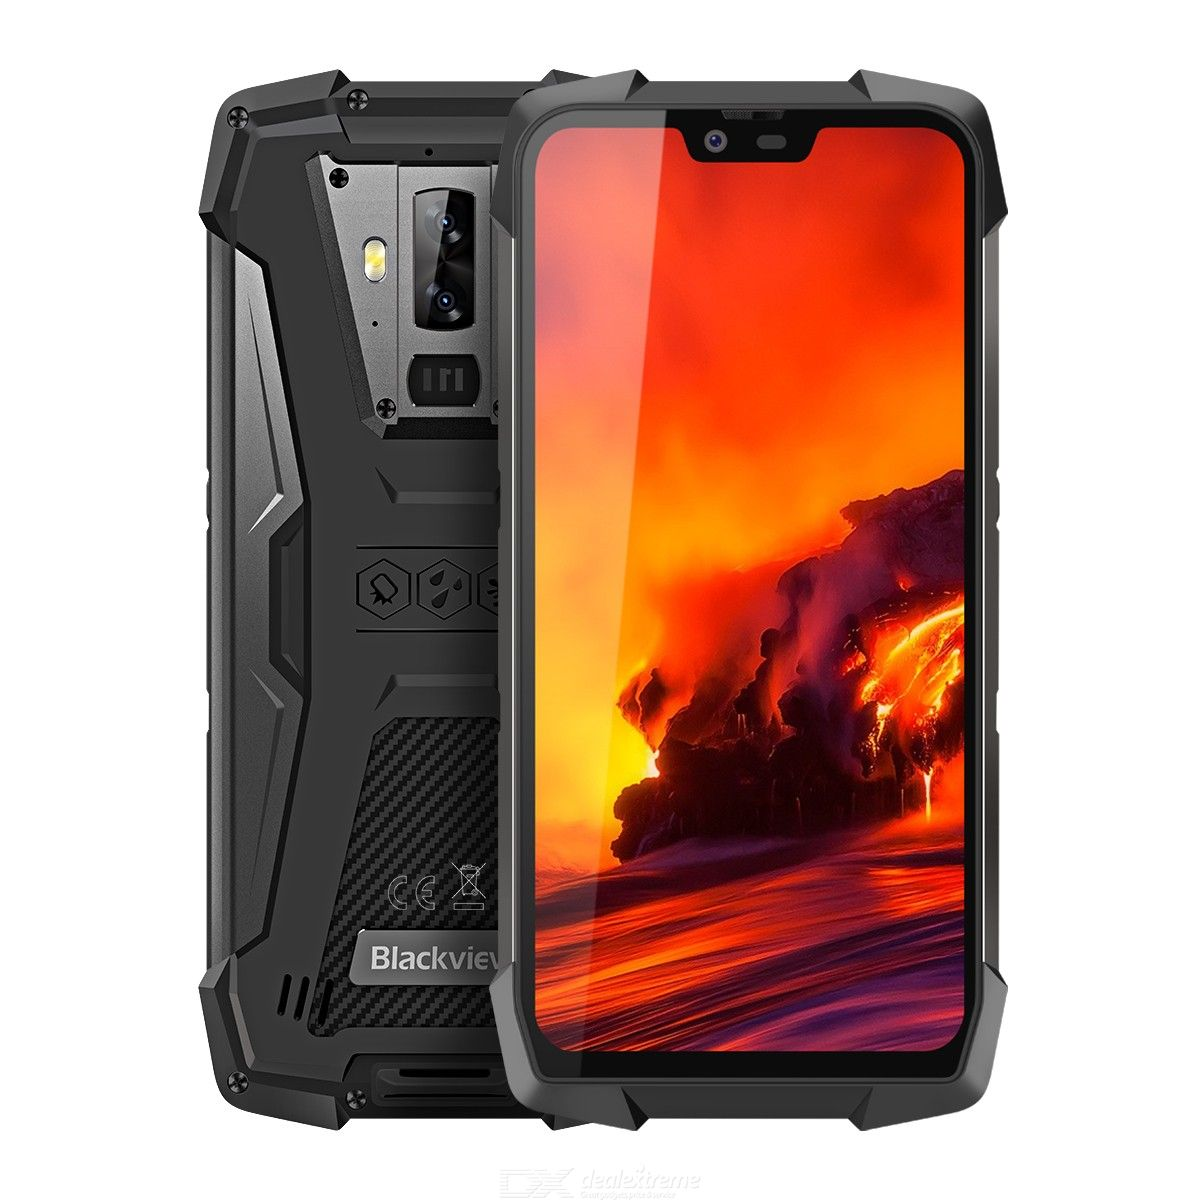 Blackview BV9700 Pro IP68IP69K Rugged Helio P70 Octa core 6GB+128GB 5.84 inch IPS 16MP+8MP 4G Face ID Smartphone